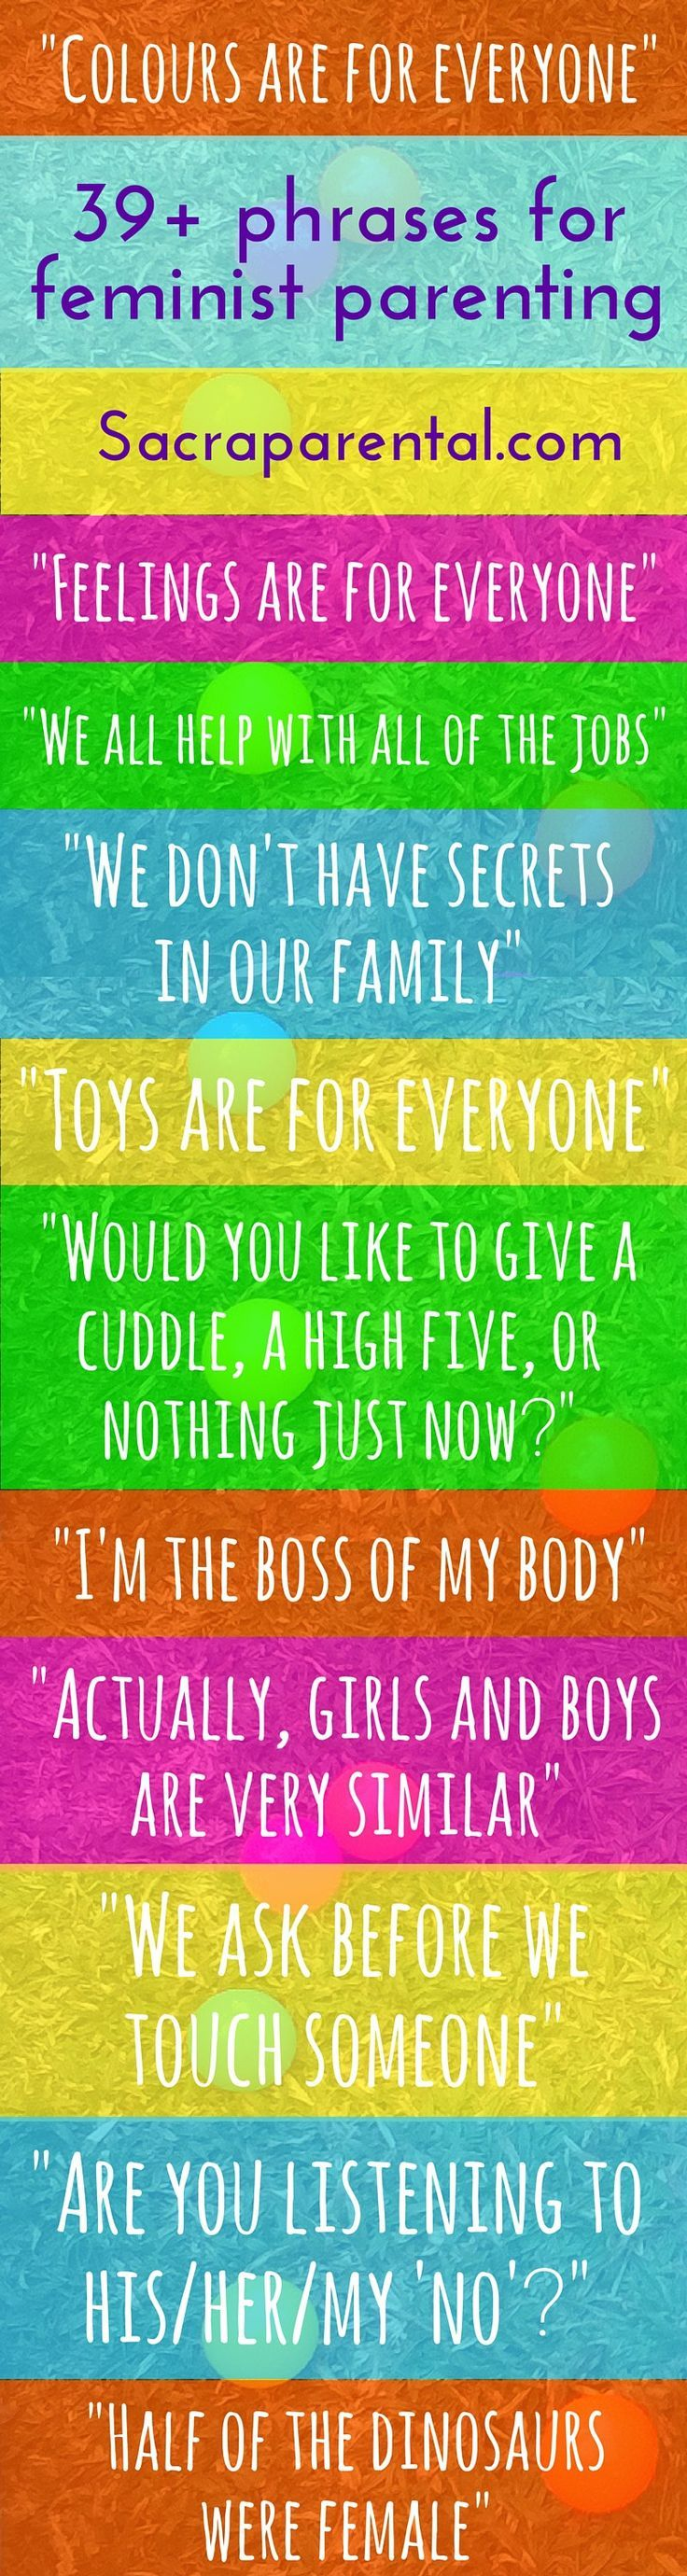 Gender neutral parenting infographic: 'Colours are for everyone!' - one of a great list of phrases for feminist parenting | http://Sacraparental.com